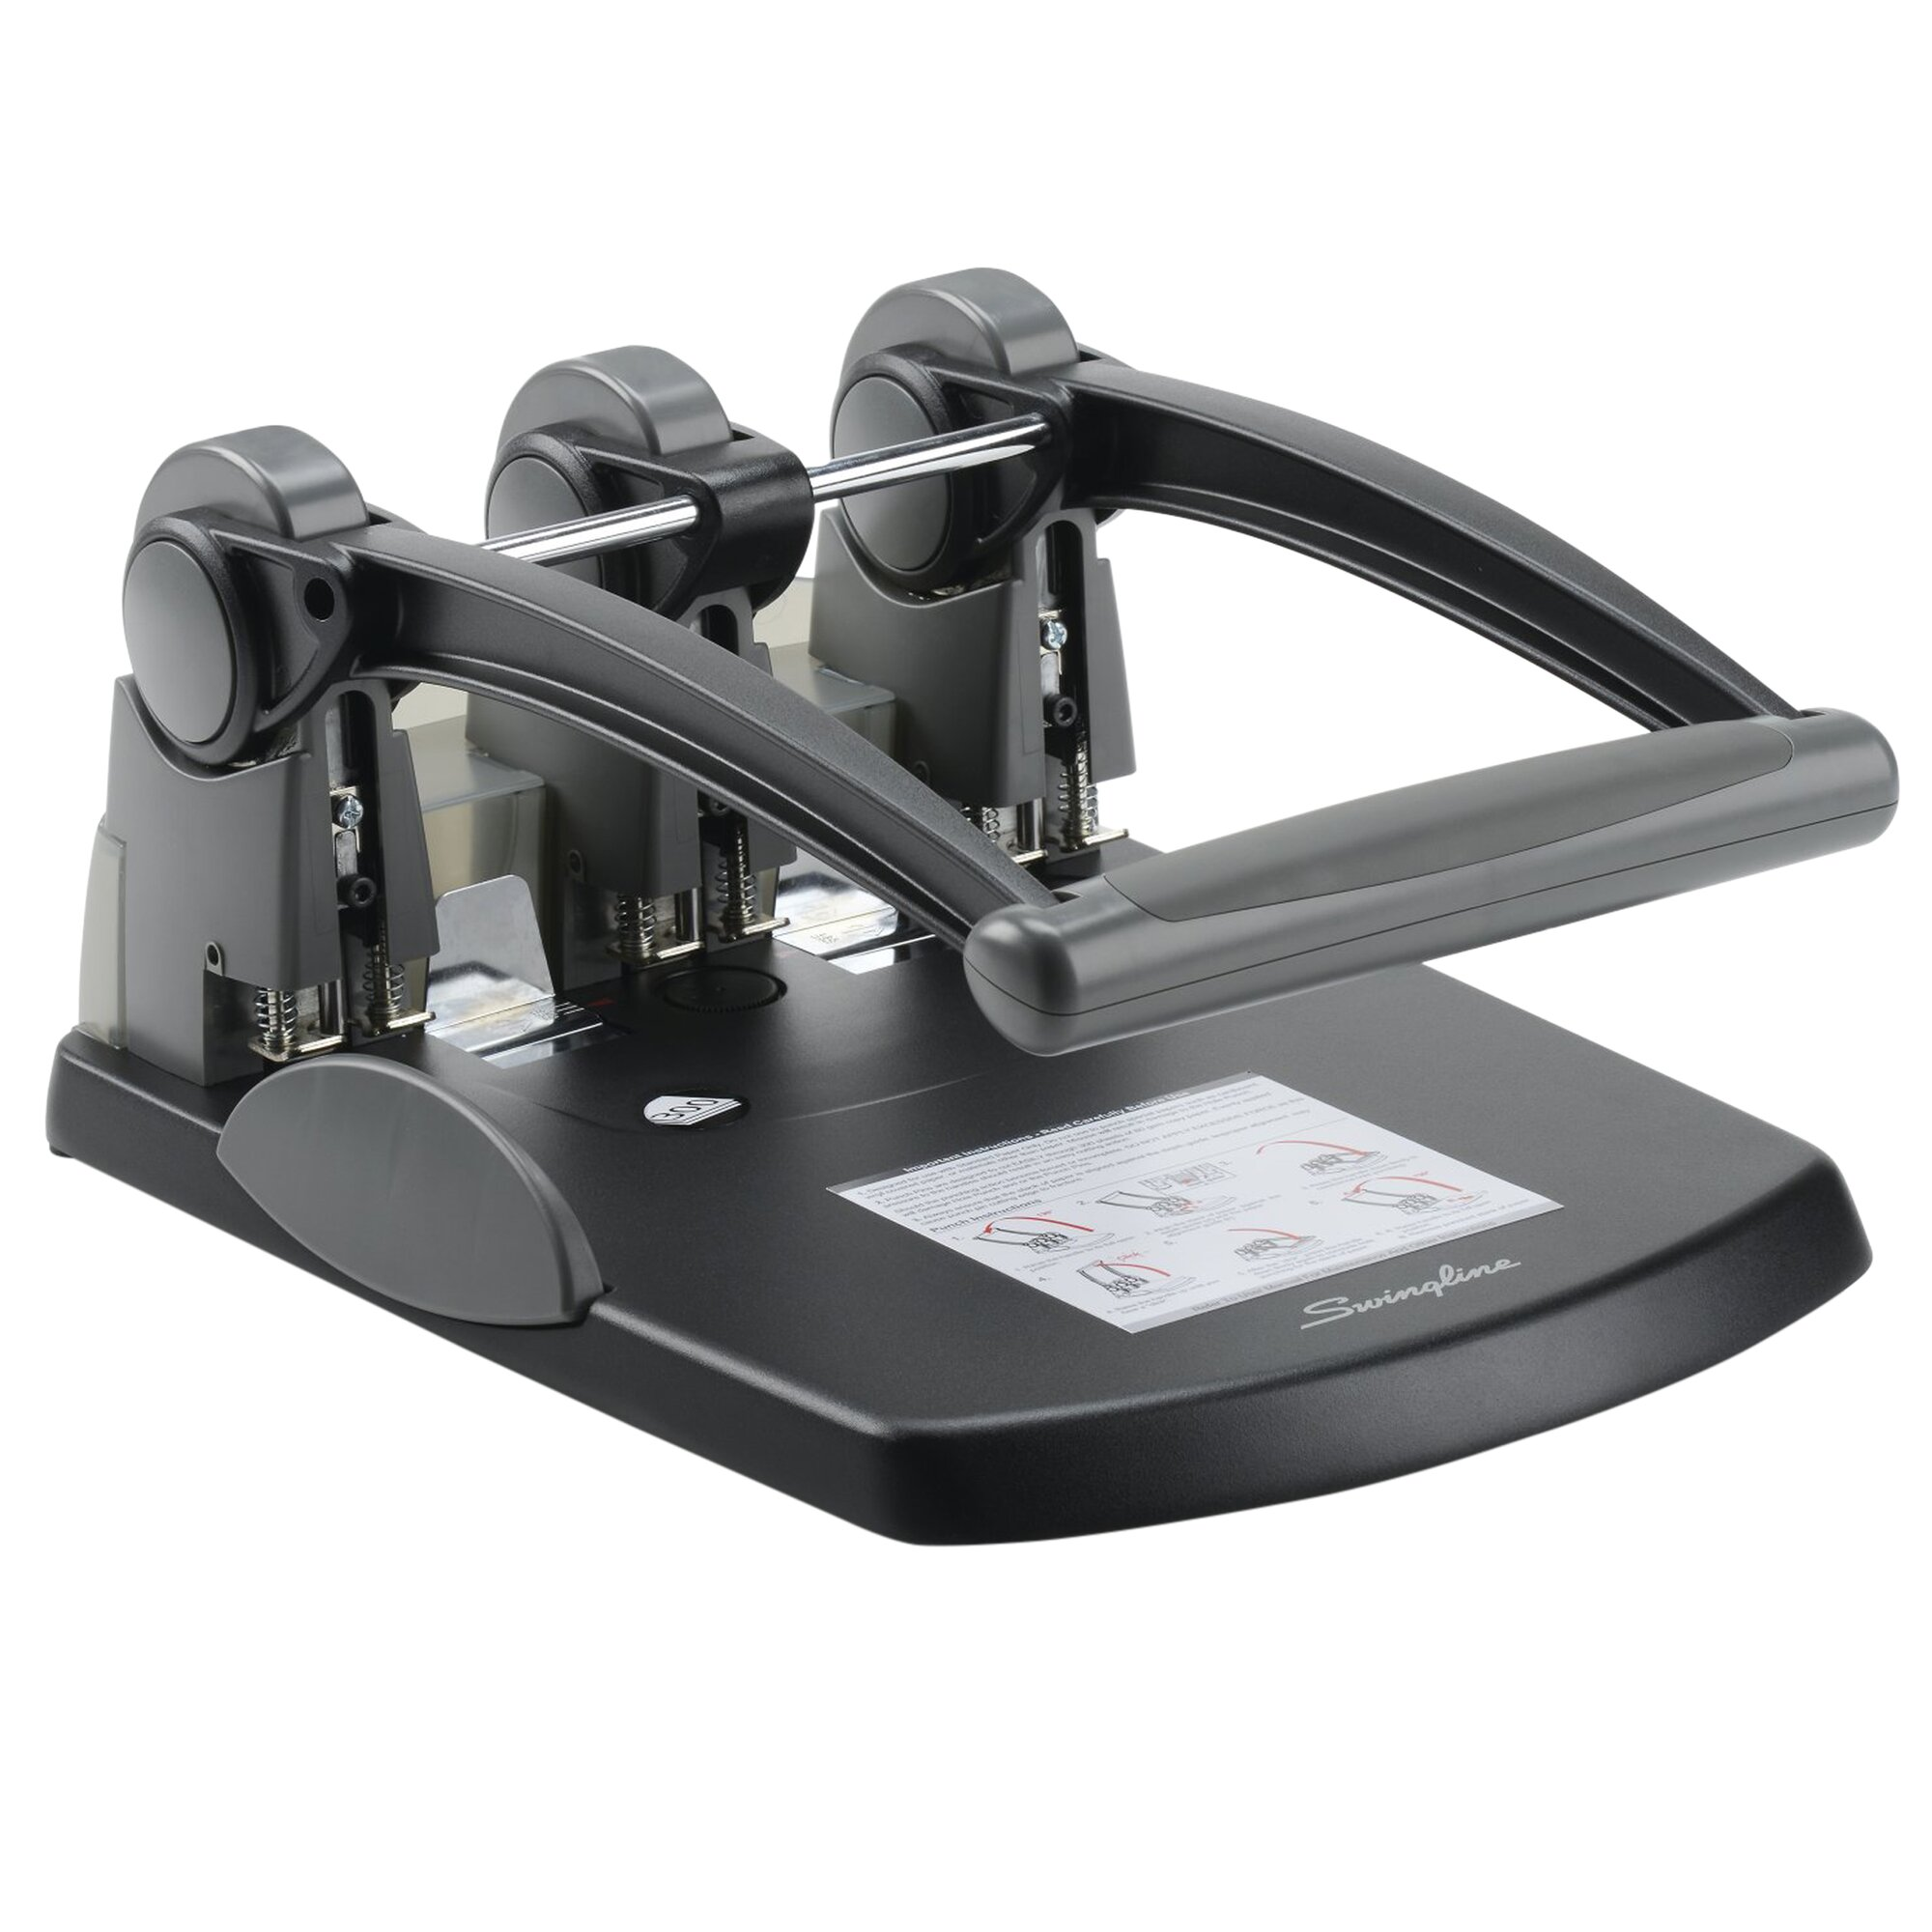 "300-Sheet Extra High-Capacity Three-Hole Punch, 9/32"" Holes, Black/Gray"